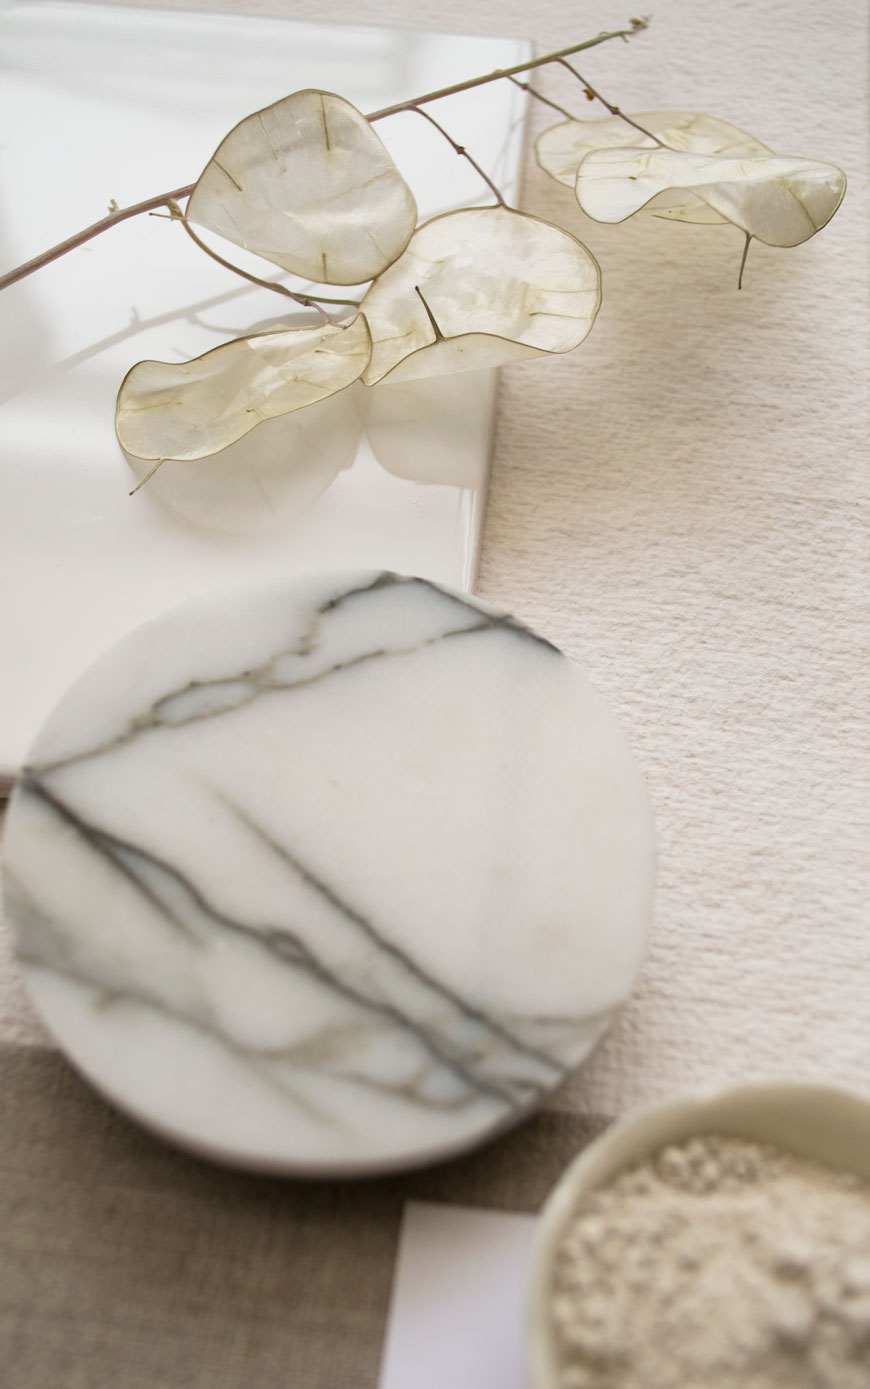 Translucent dried honesty or Lunaria, styled on a glazed white tile in a neutral moodboard.